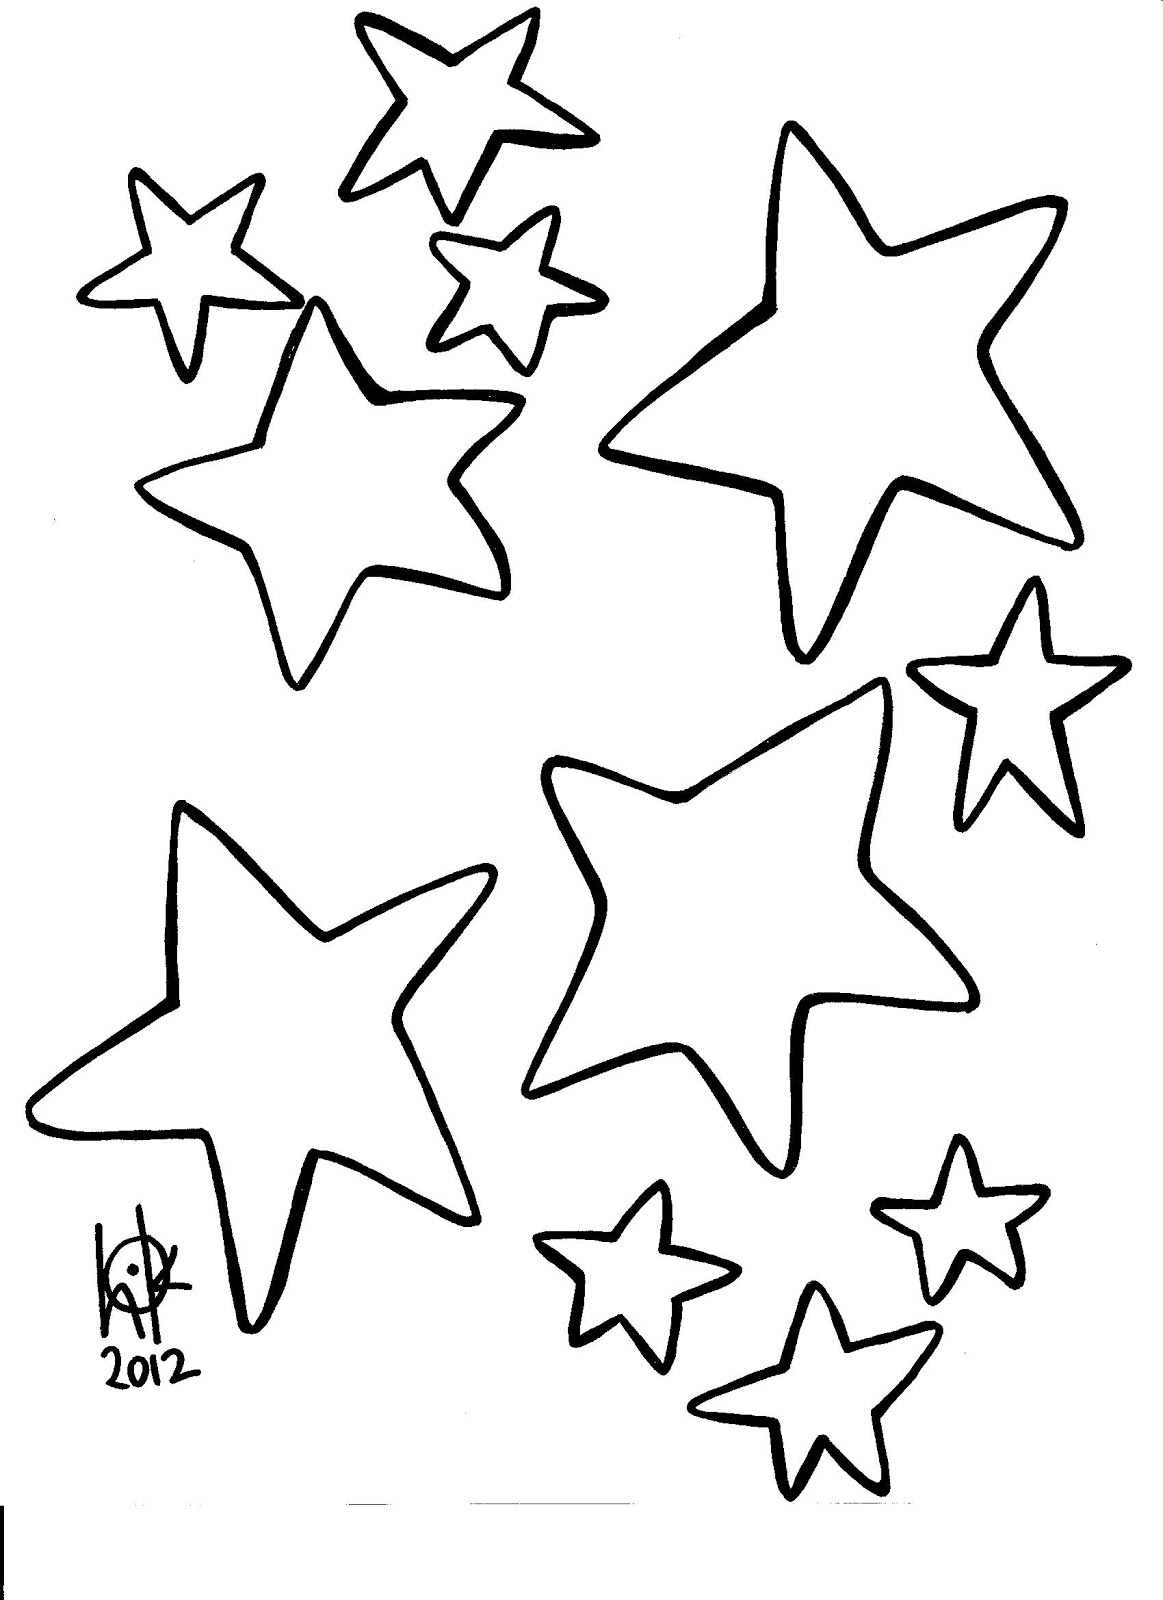 coloring star images 60 star coloring pages customize and print ad free pdf star coloring images